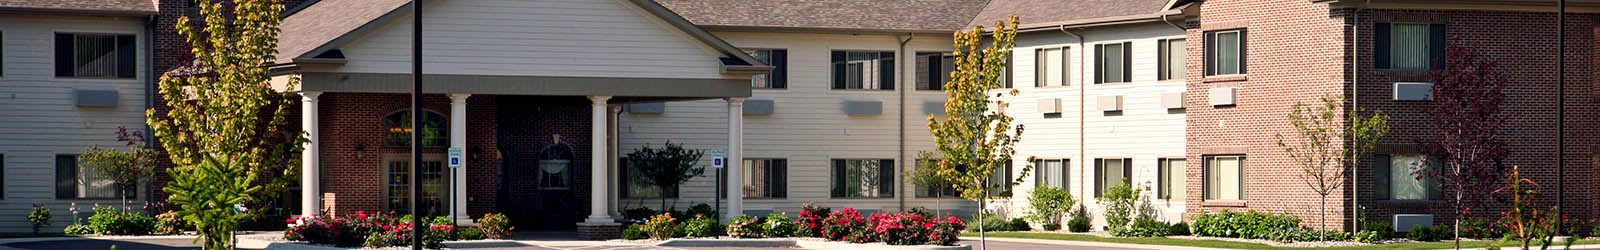 Read our senior living community's privacy policy